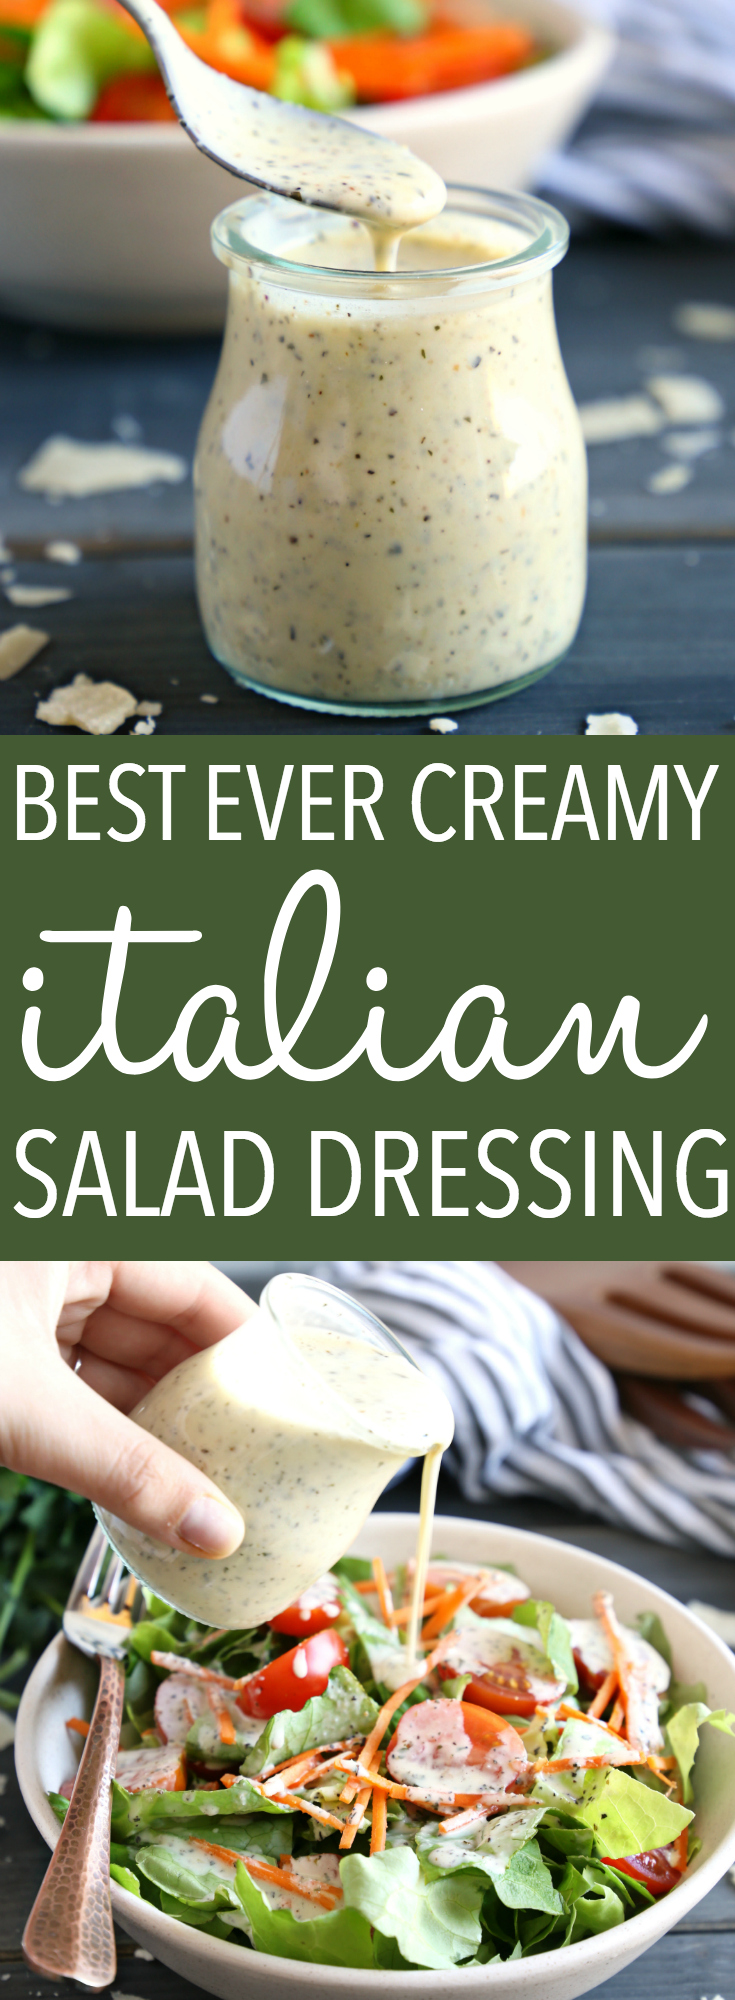 This Classic Creamy Italian Salad Dressing recipe is one for the books! It's packed with delicious herbs and makes the perfect creamy addition to any garden salad! And it's SO easy to make and healthy too! Recipe from thebusybaker.ca! #saladdressing #salad #easyrecipe #italian #fresh #homemade #masonjar #blender #dressing #dip #spread #condiment #herbs #parmesan #vegetarian #healthy #cleaneating via @busybakerblog